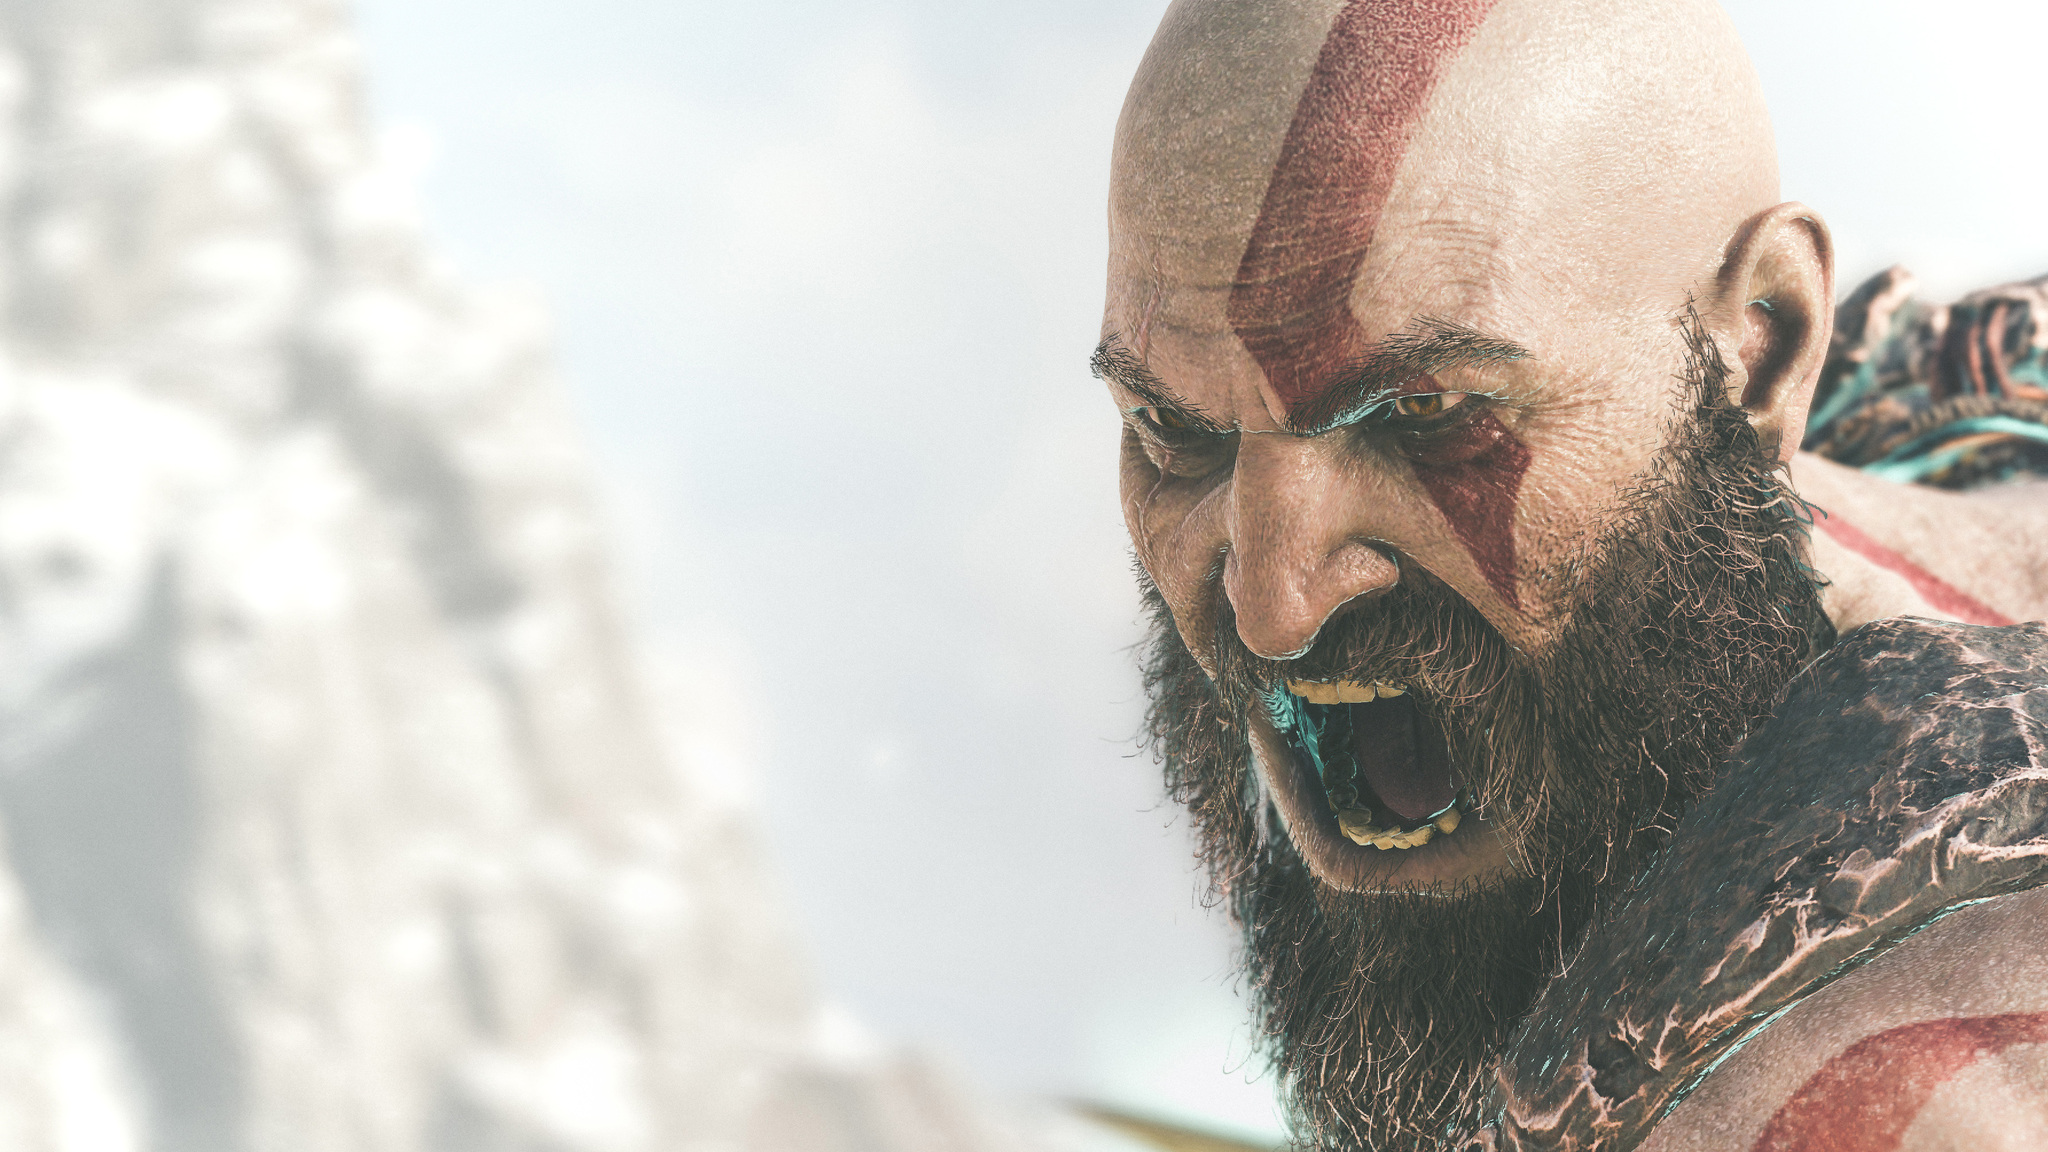 2018-kratos-god-of-war-4k-nz.jpg